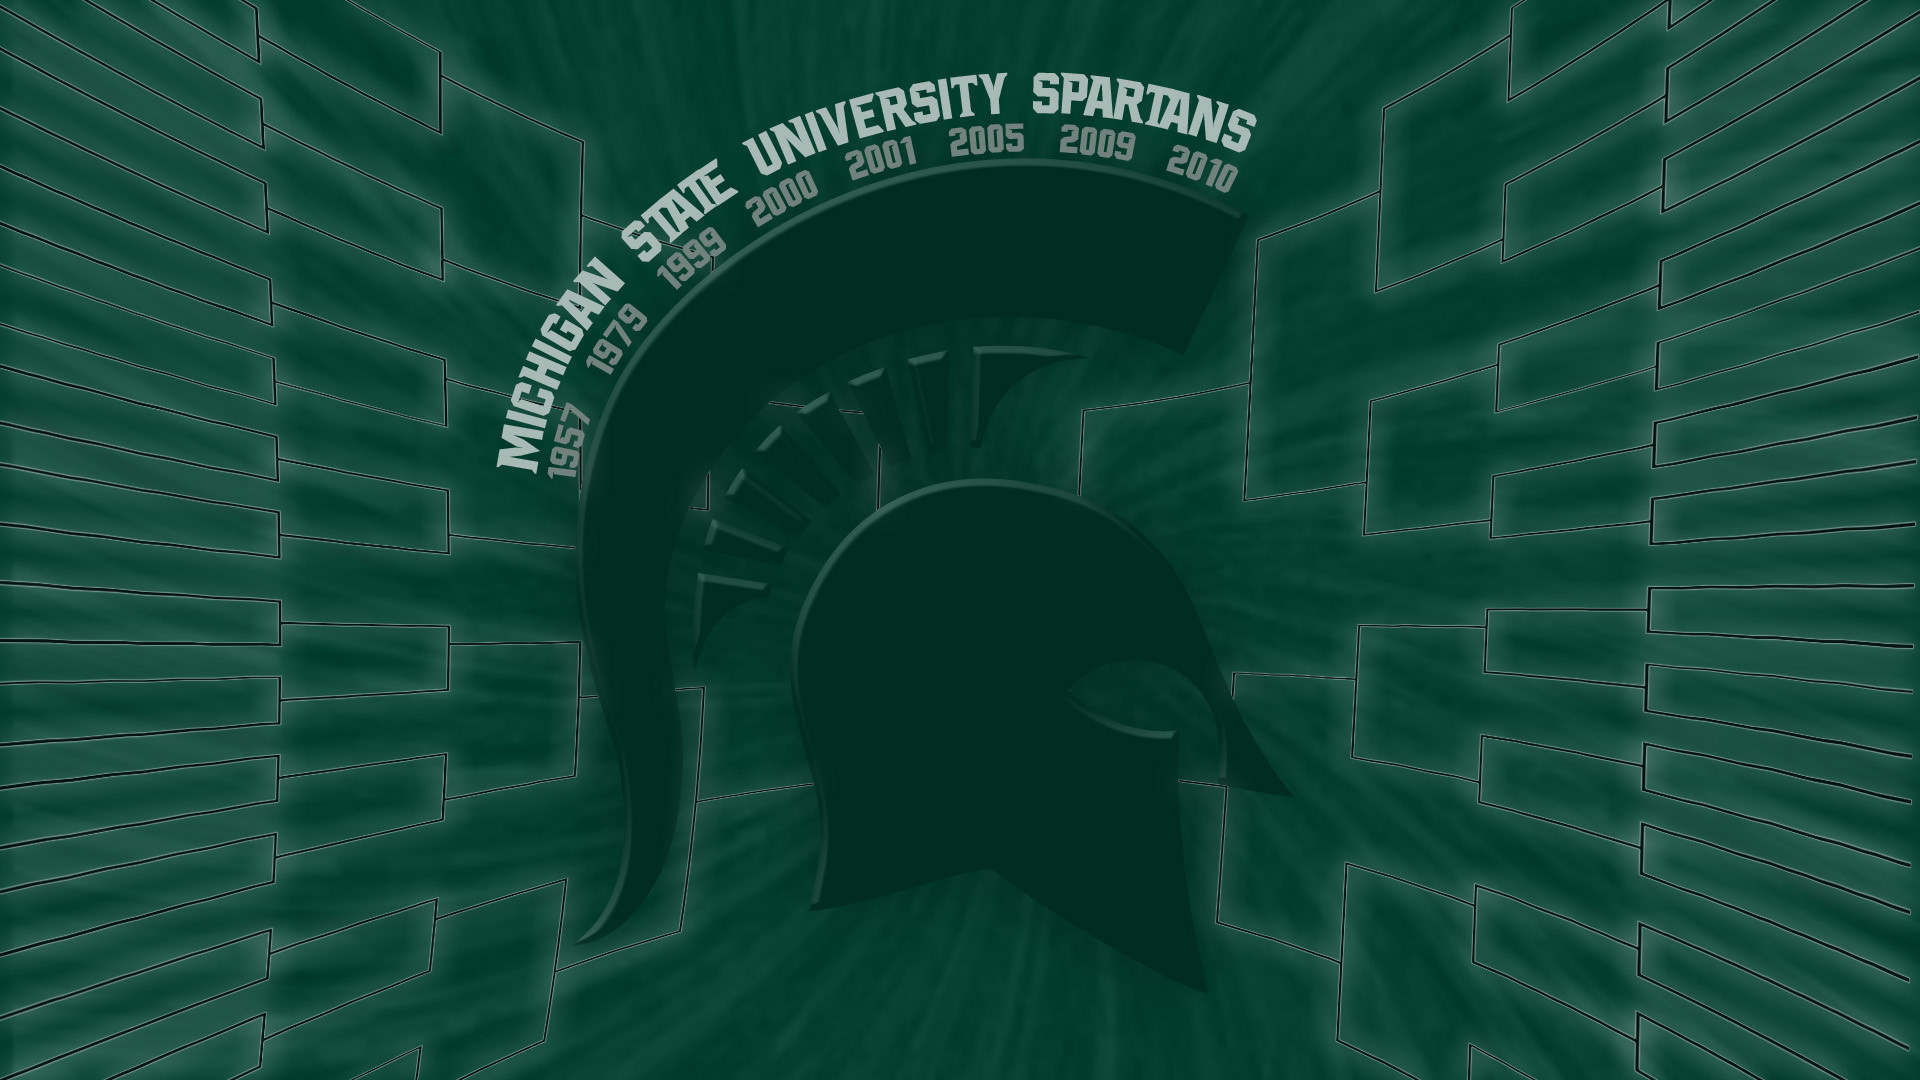 Michigan State Wallpaper 73 Images